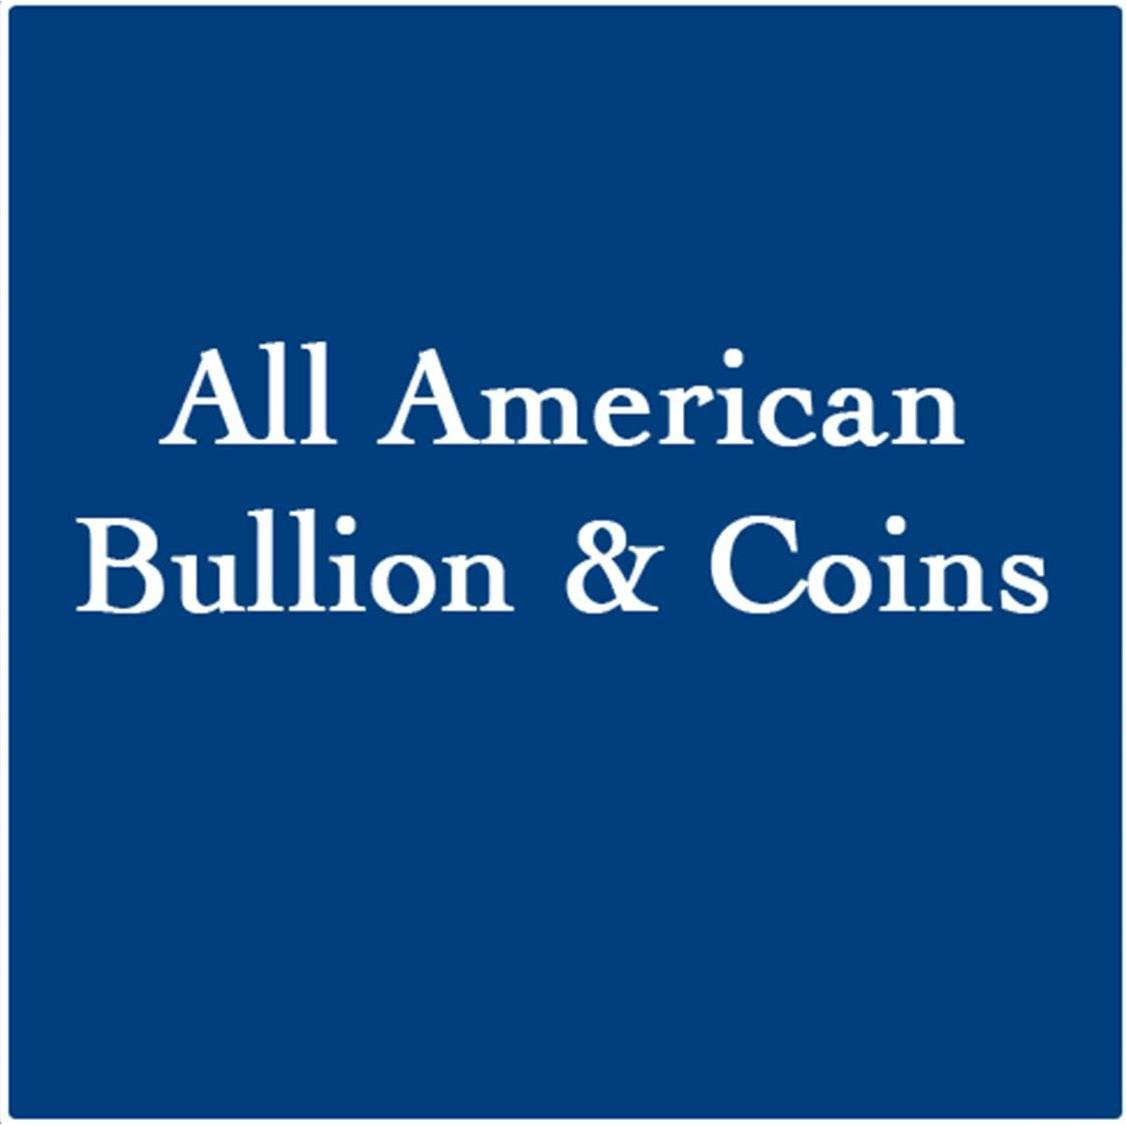 All American Bullion and Coins